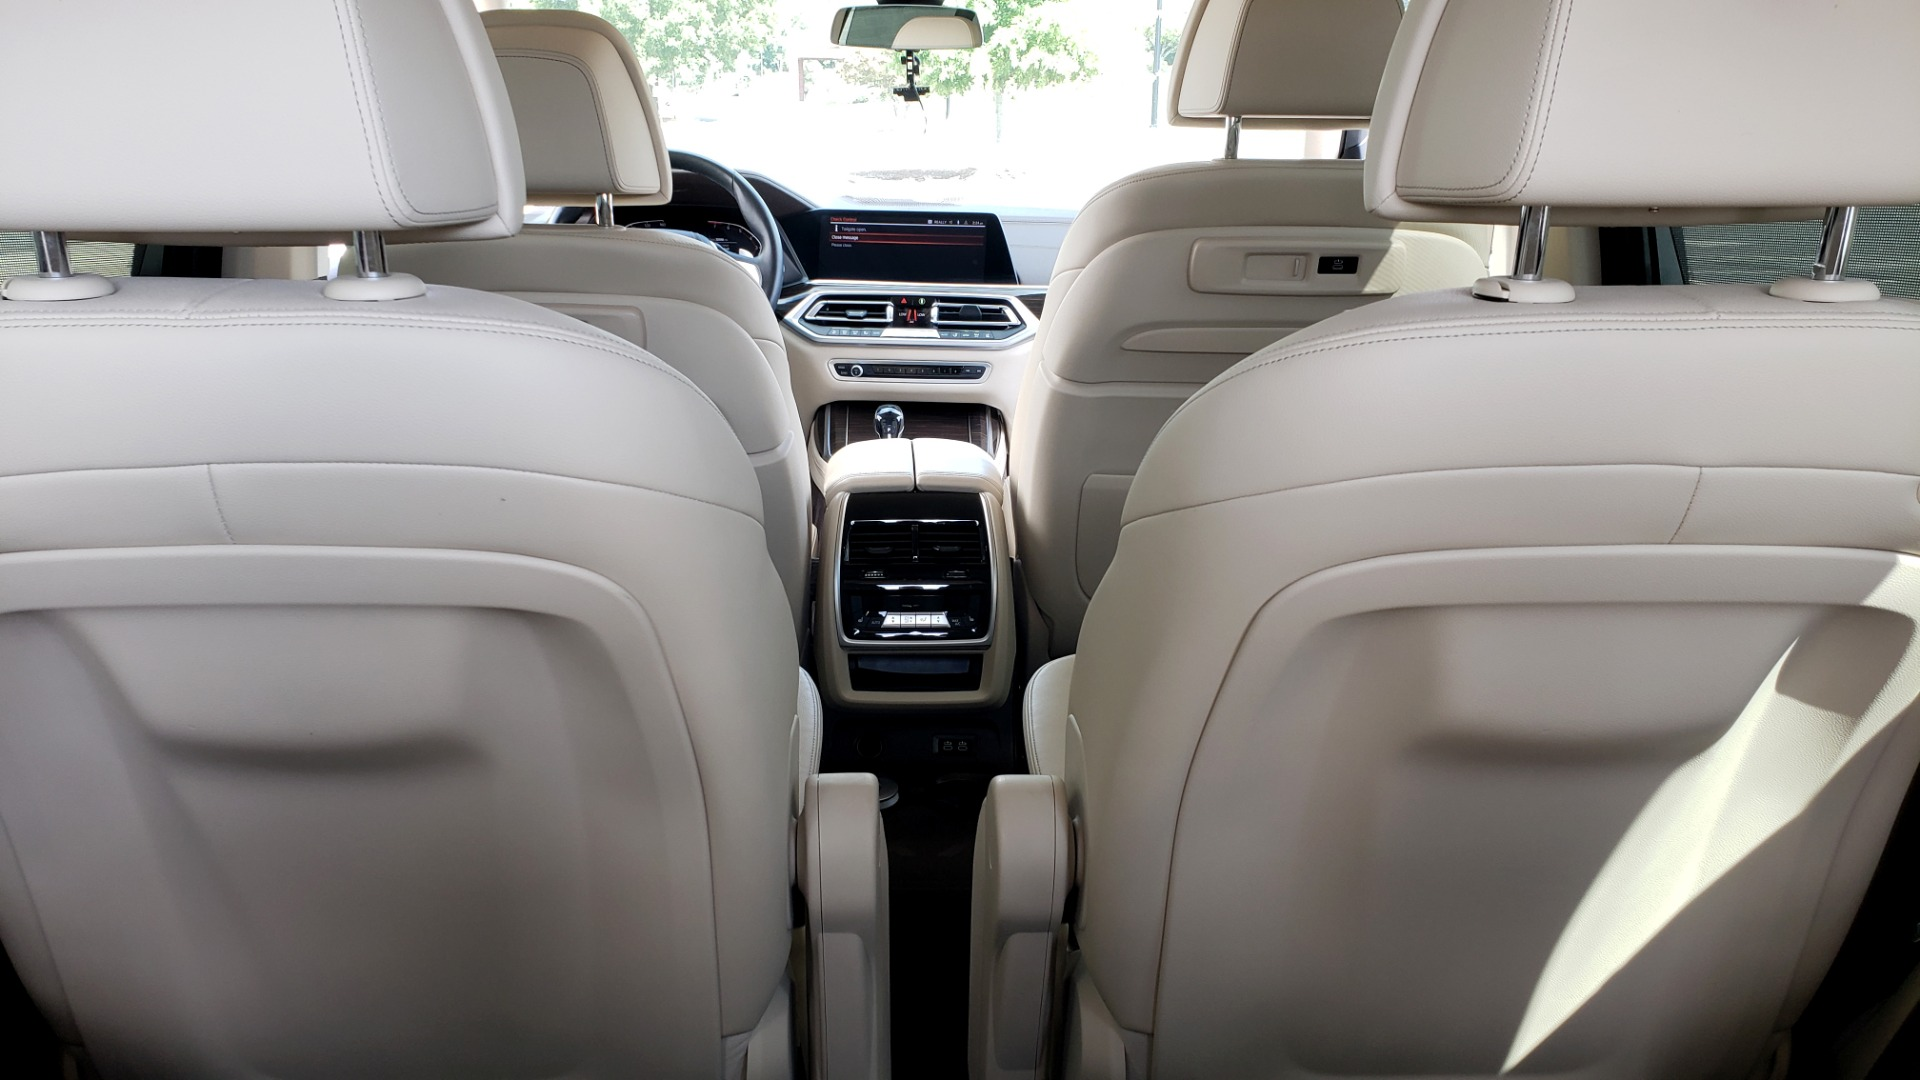 Used 2019 BMW X7 XDRIVE40I PREMIUM / LUXURY / COLD WEATHER / PARK ASST / PANORAMIC SKY / TOW for sale $75,999 at Formula Imports in Charlotte NC 28227 24